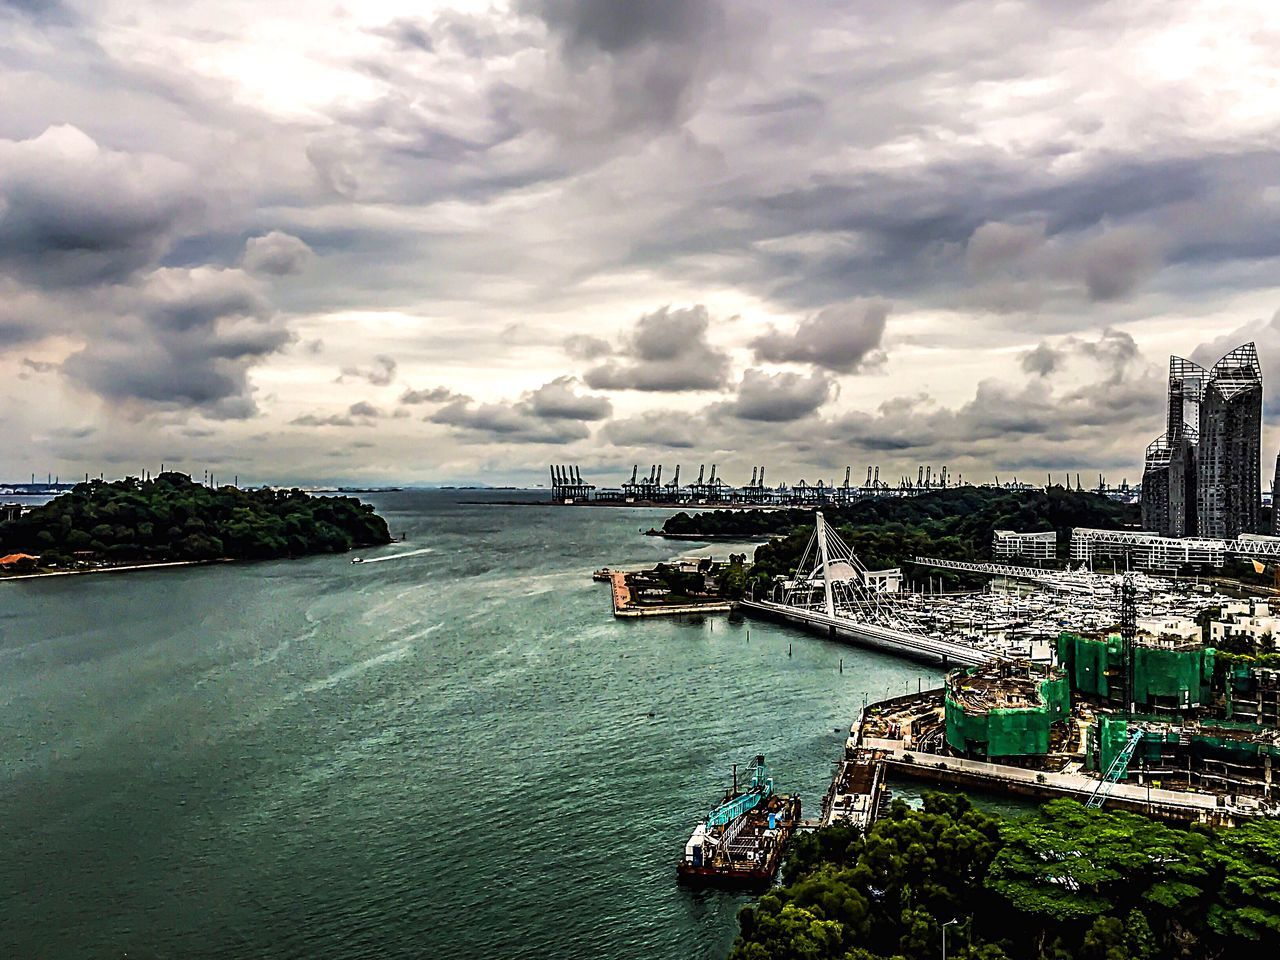 Clouds in Singapore taken from cable car from Mt.faber